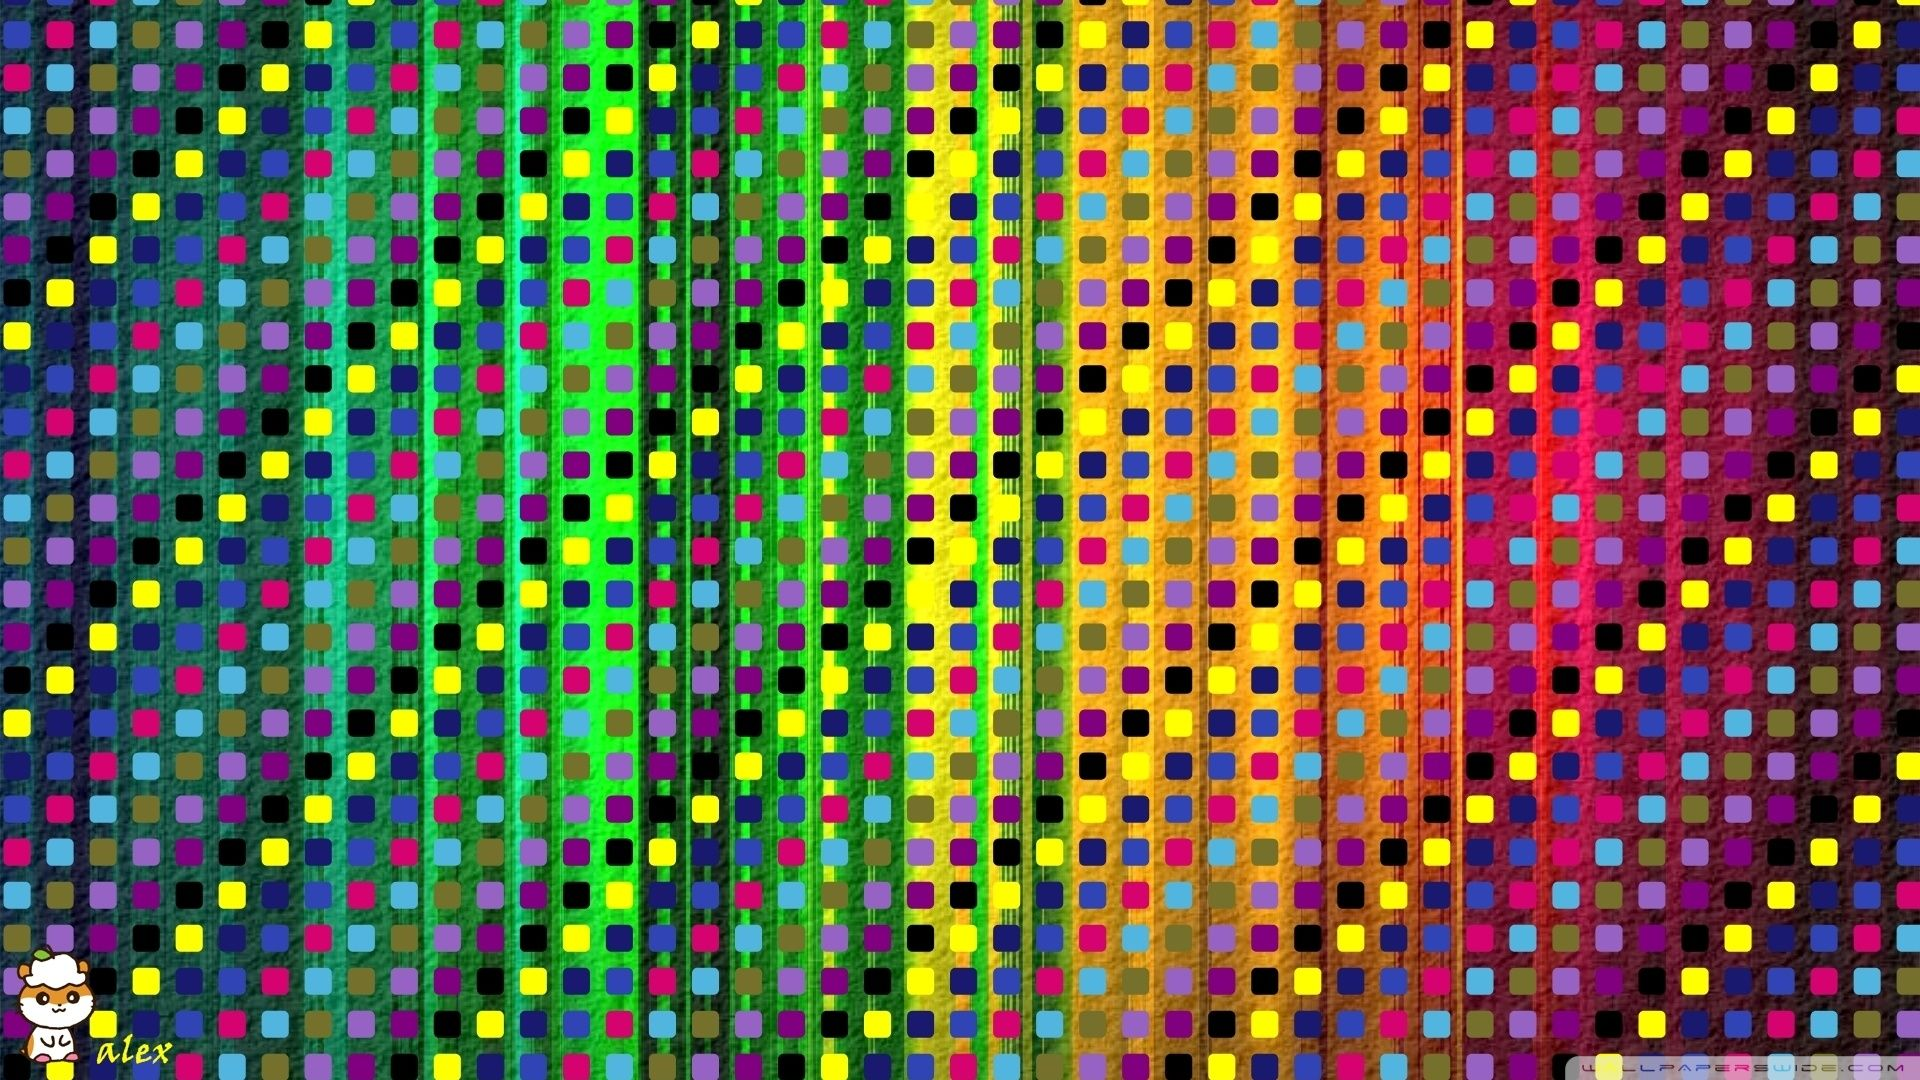 Colorful Patterns - Backgrounds Colorful Pattern Background Download Ipadipad Pictures